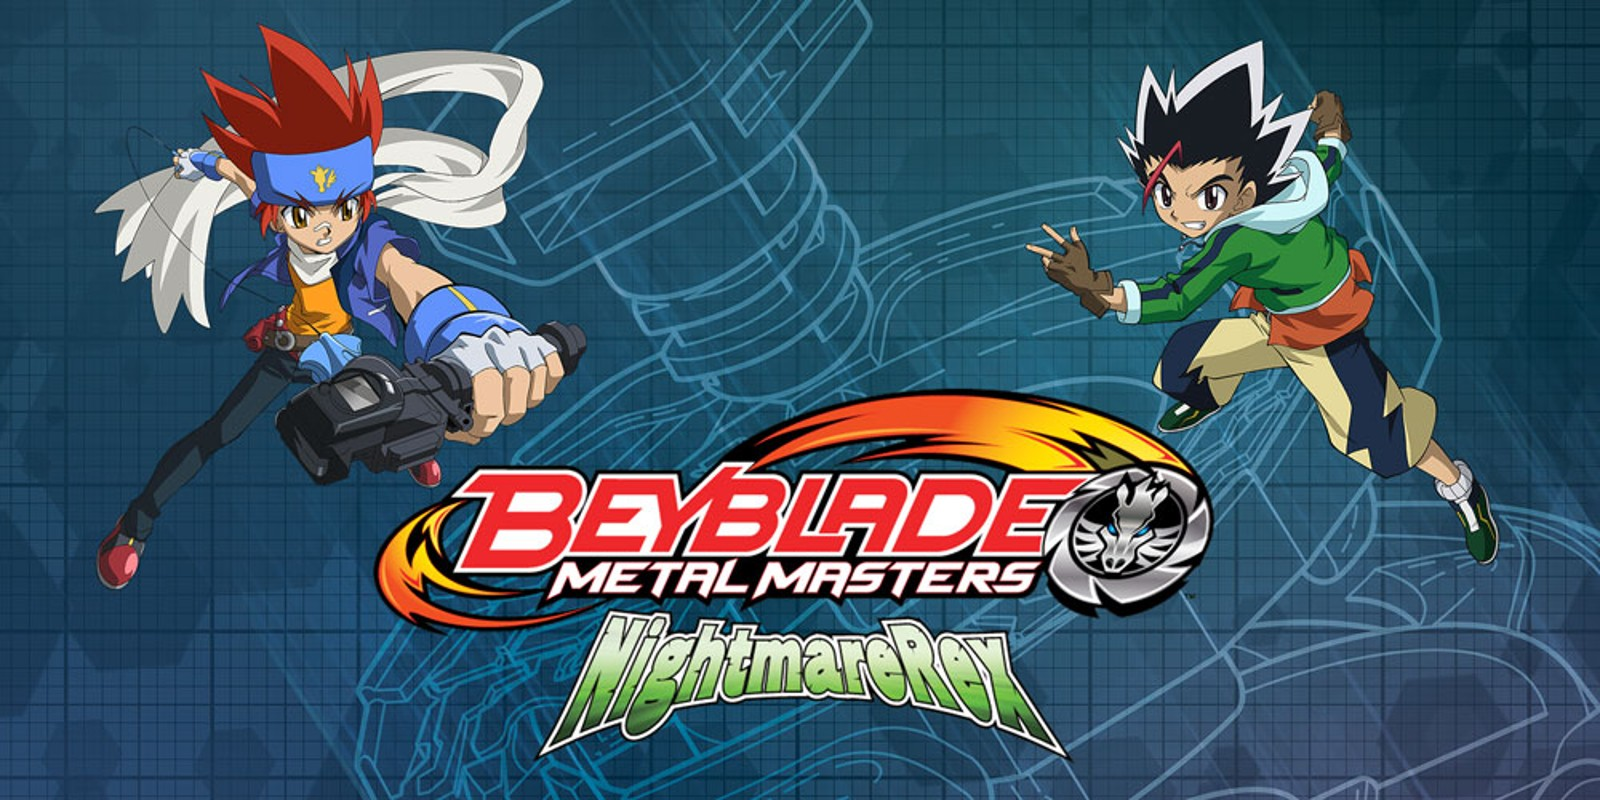 Mario 3d Wallpaper Beyblade Metal Masters Nightmare Rex Nintendo Ds